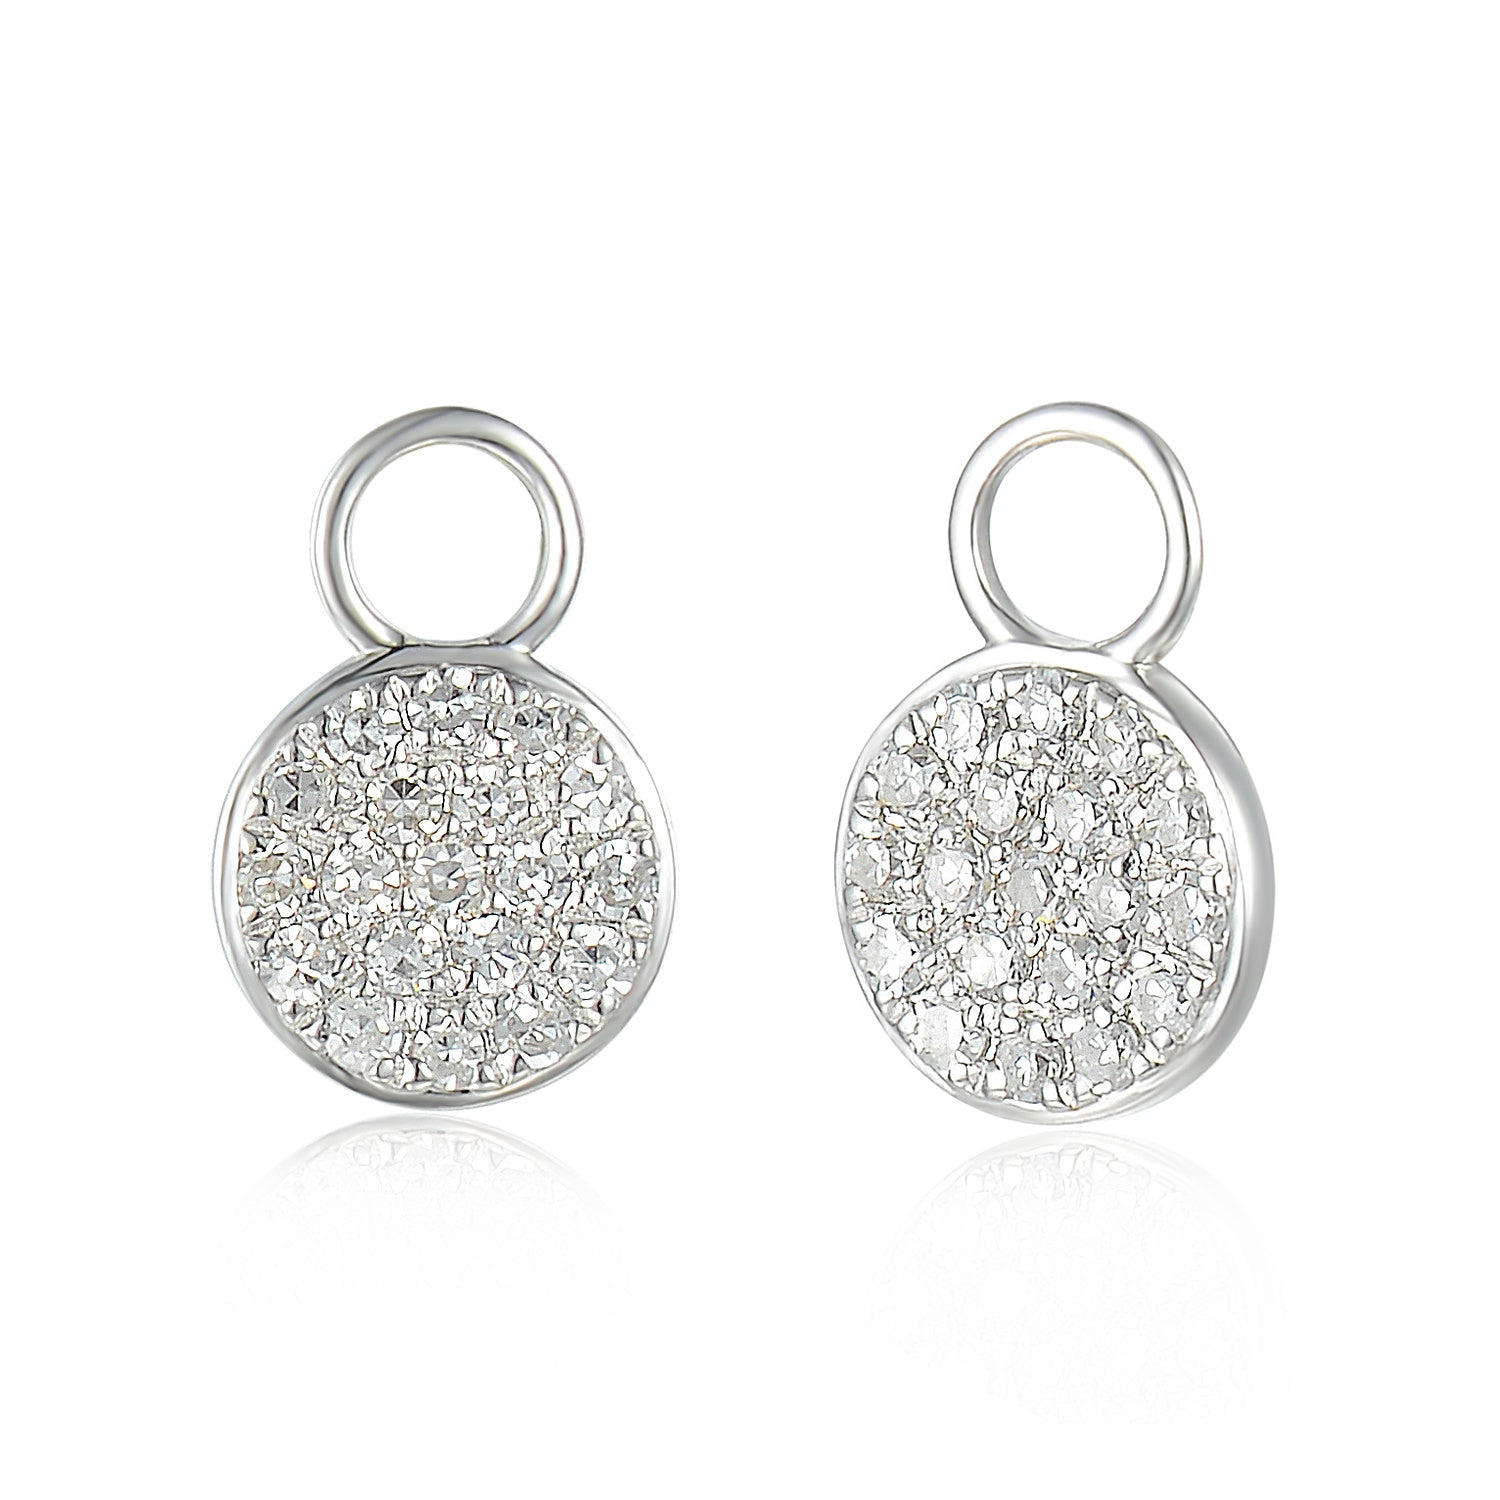 1ce7fe79a ... 18ct White Gold Diamond Sleeper Hoop With Hanging Interchangeable  Circle Charm ...